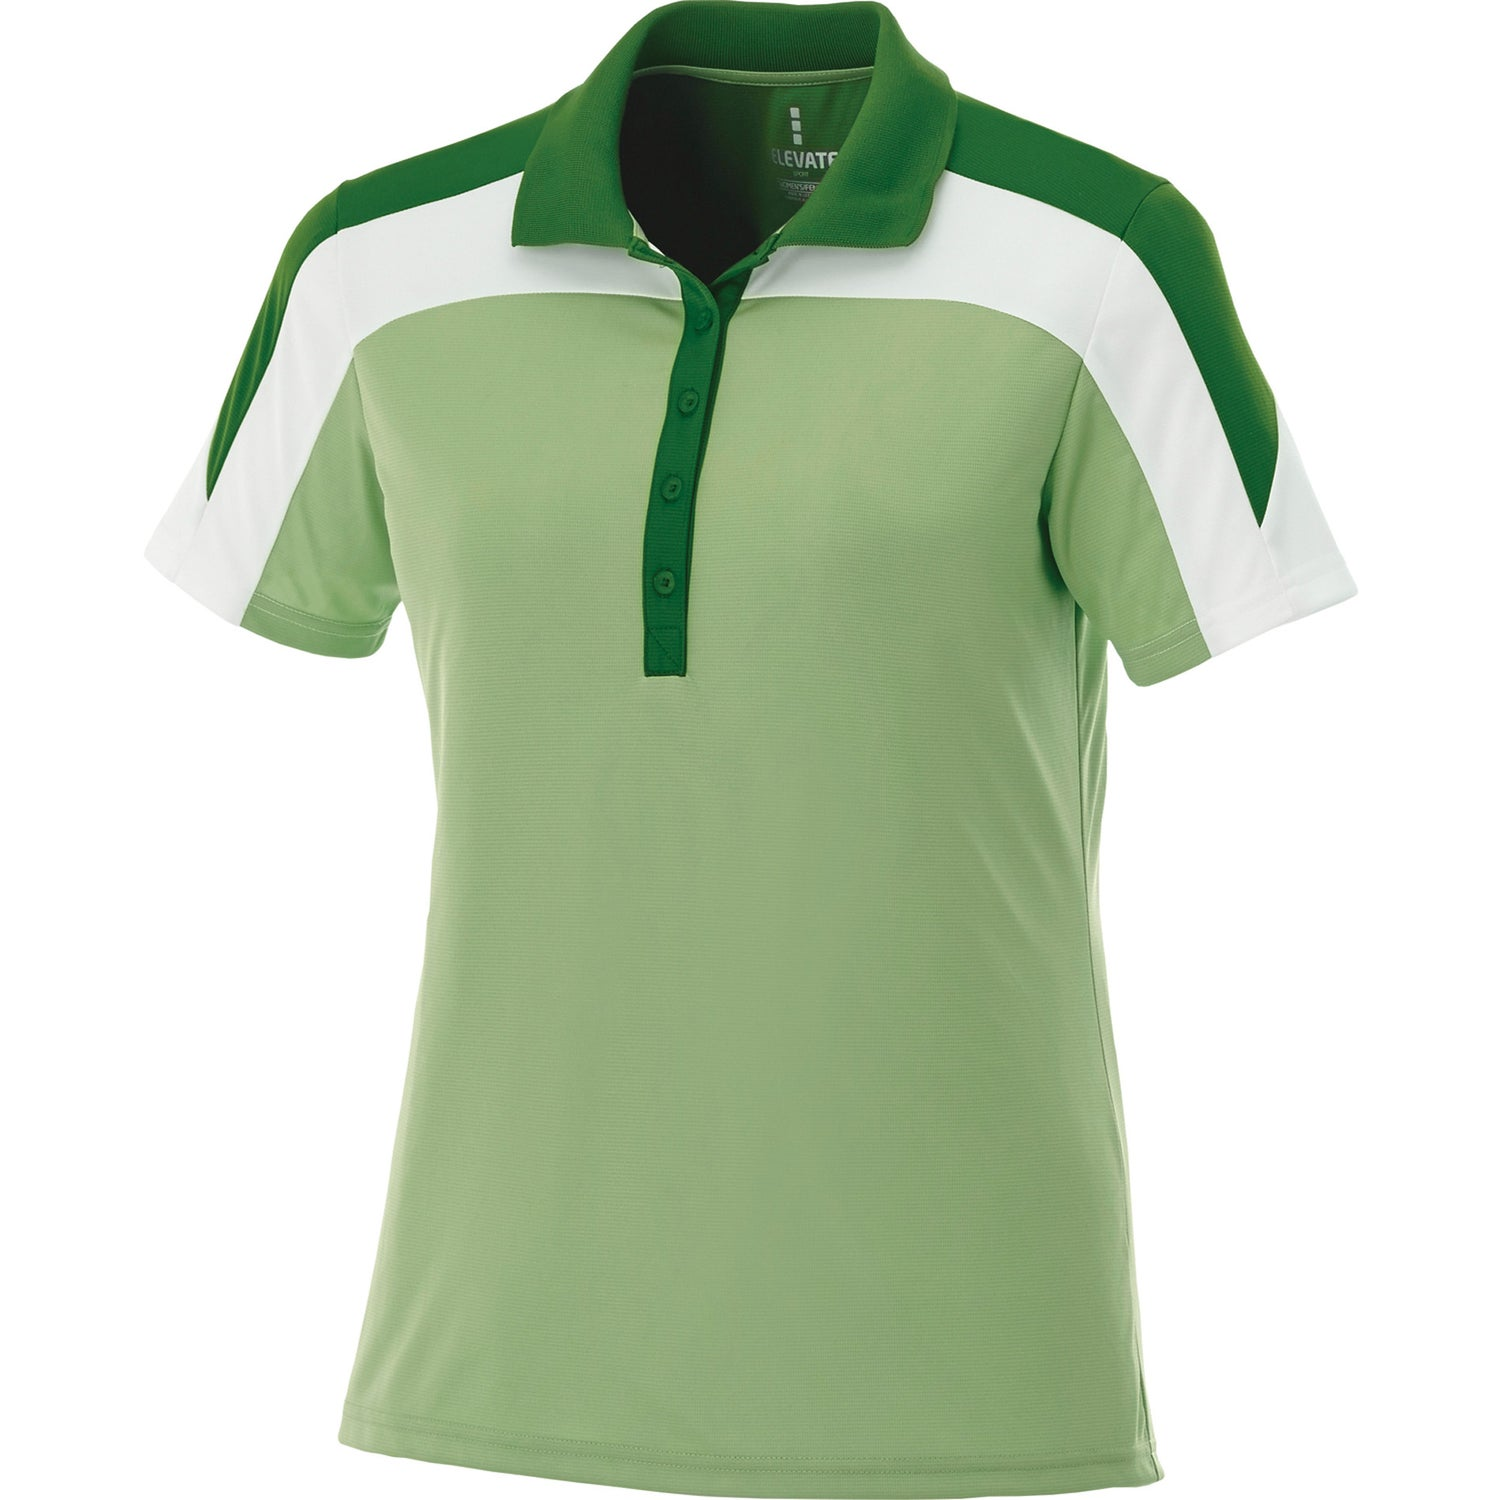 Vesta short sleeve polo shirt by trimark women 39 s for Quality polo shirts with company logo